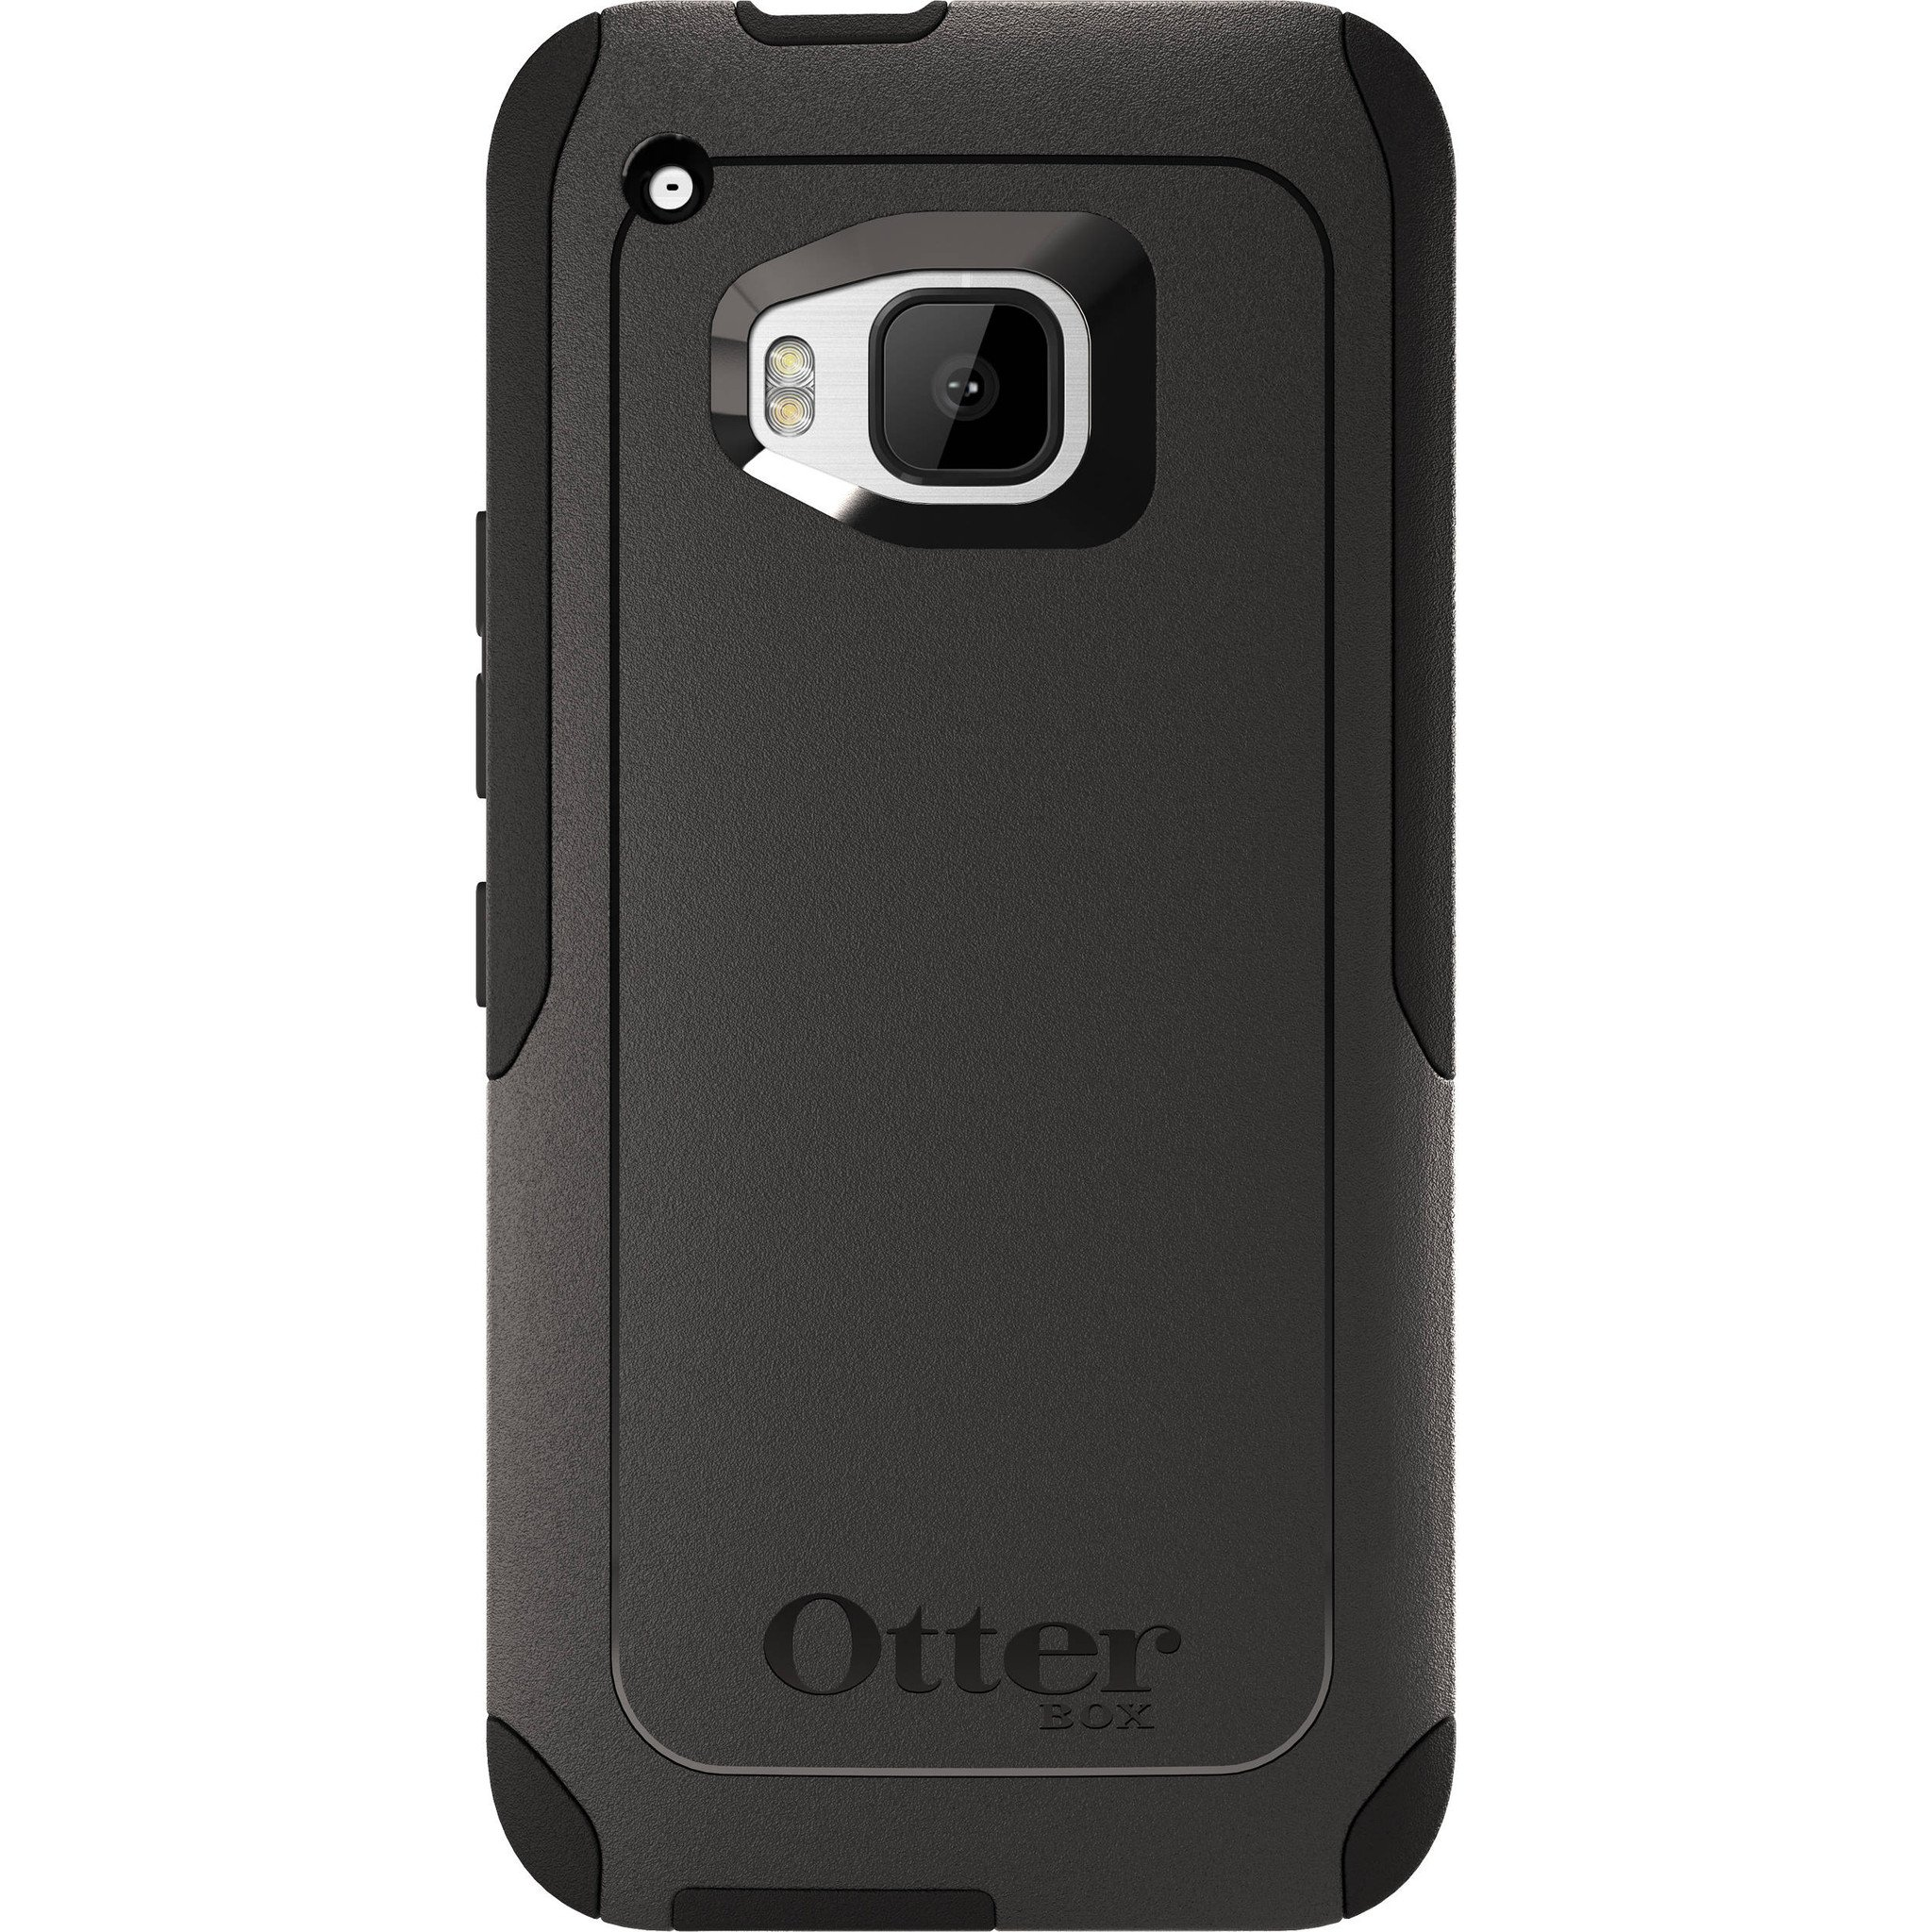 Otterbox Commuter One M9 Cases